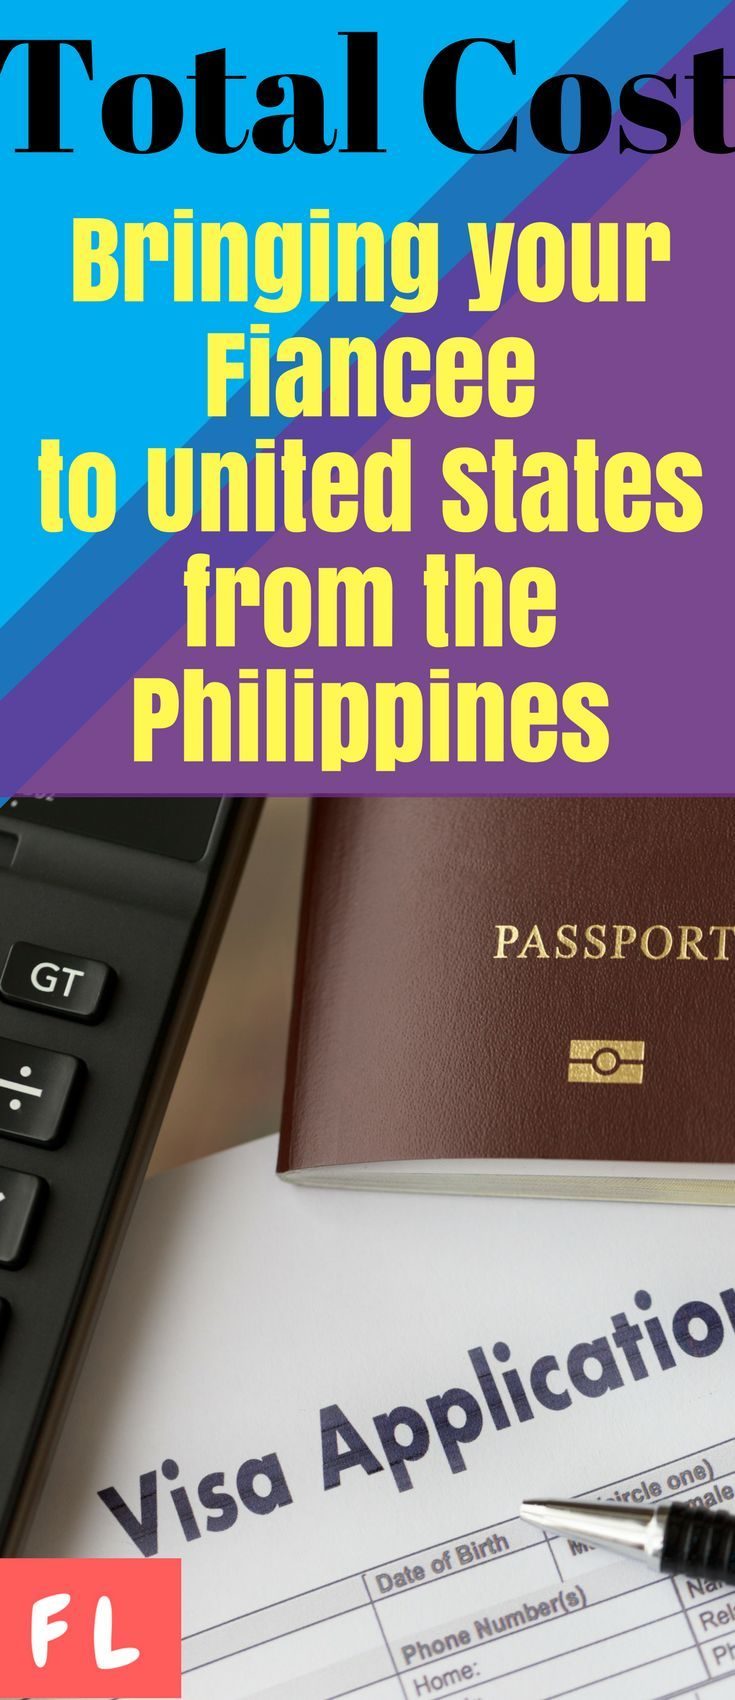 Fiance visa philippines to usa